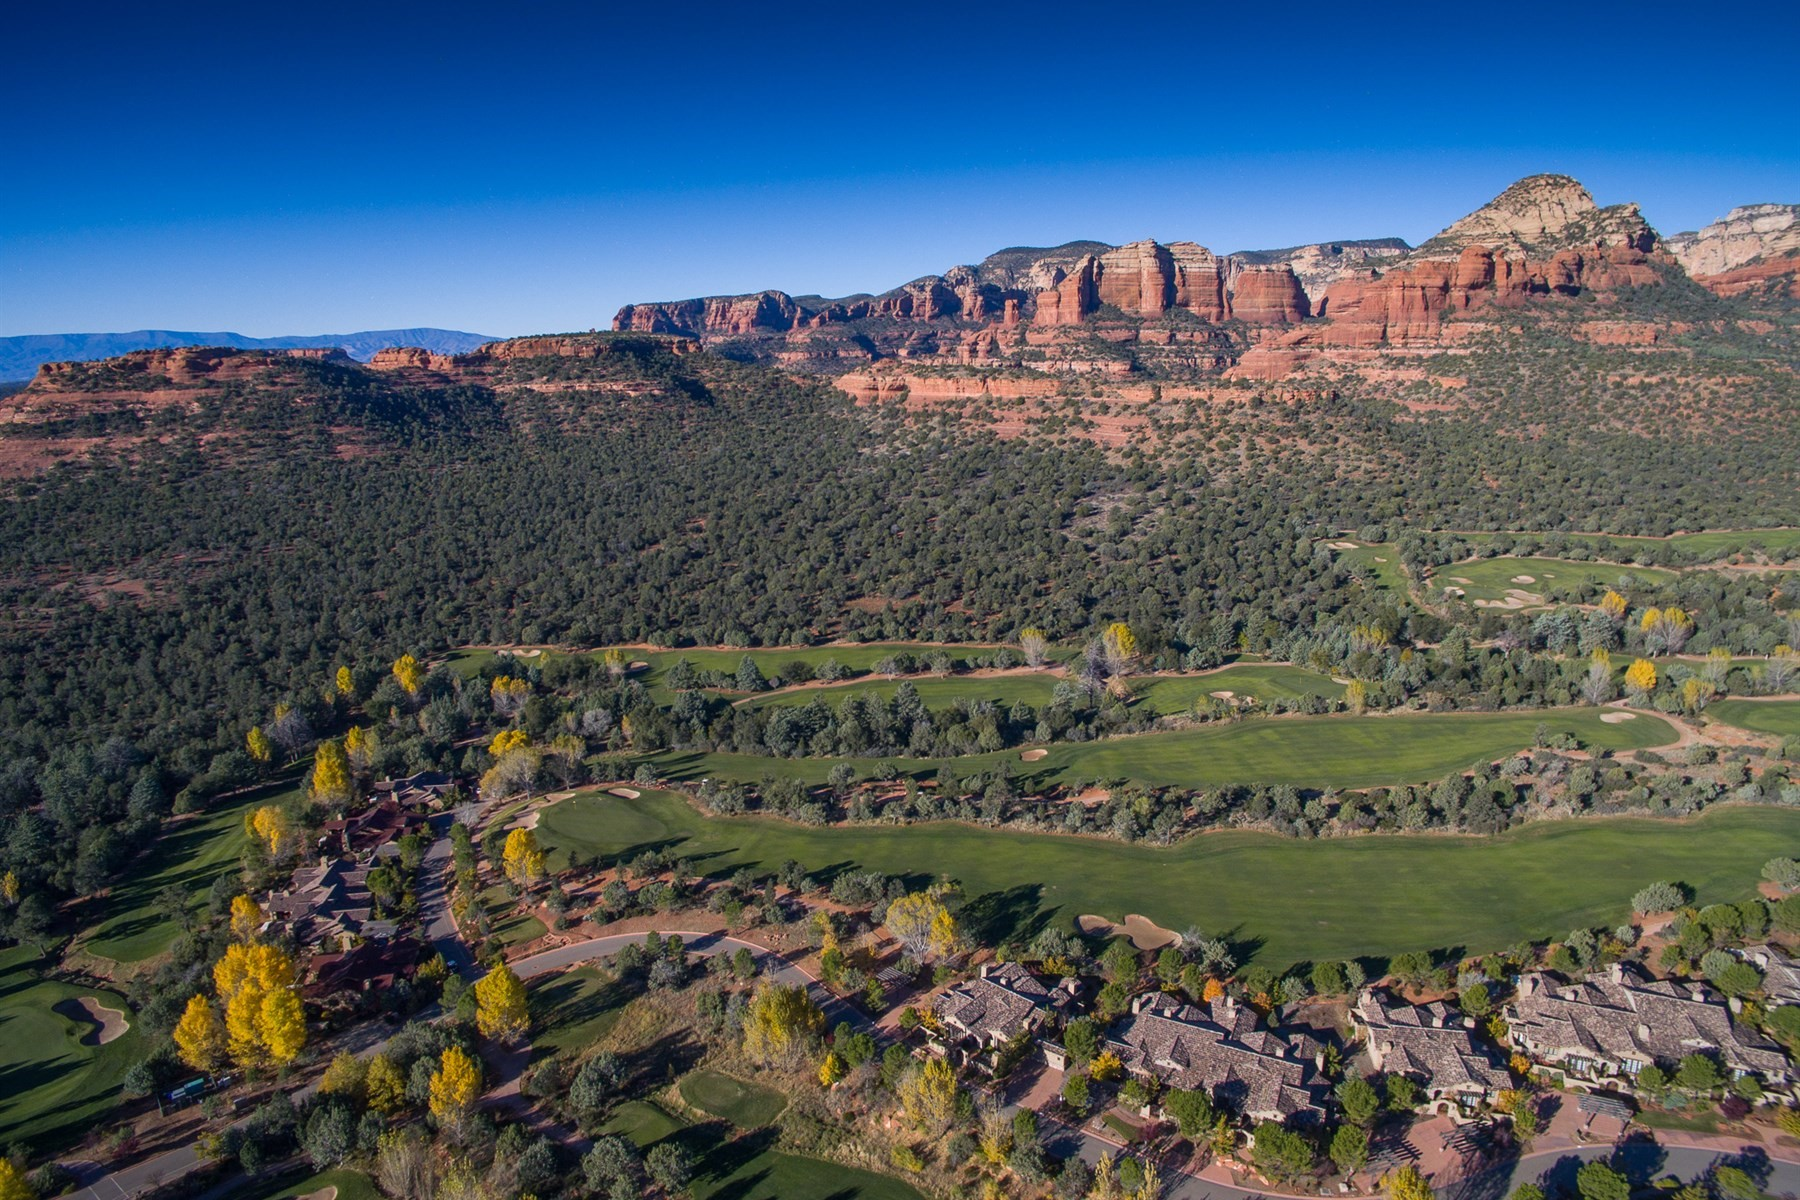 Land for Sale at Seven Canyons Golf Resort 30 W Canyon Vista Rd, Sedona, Arizona, 86336 United States